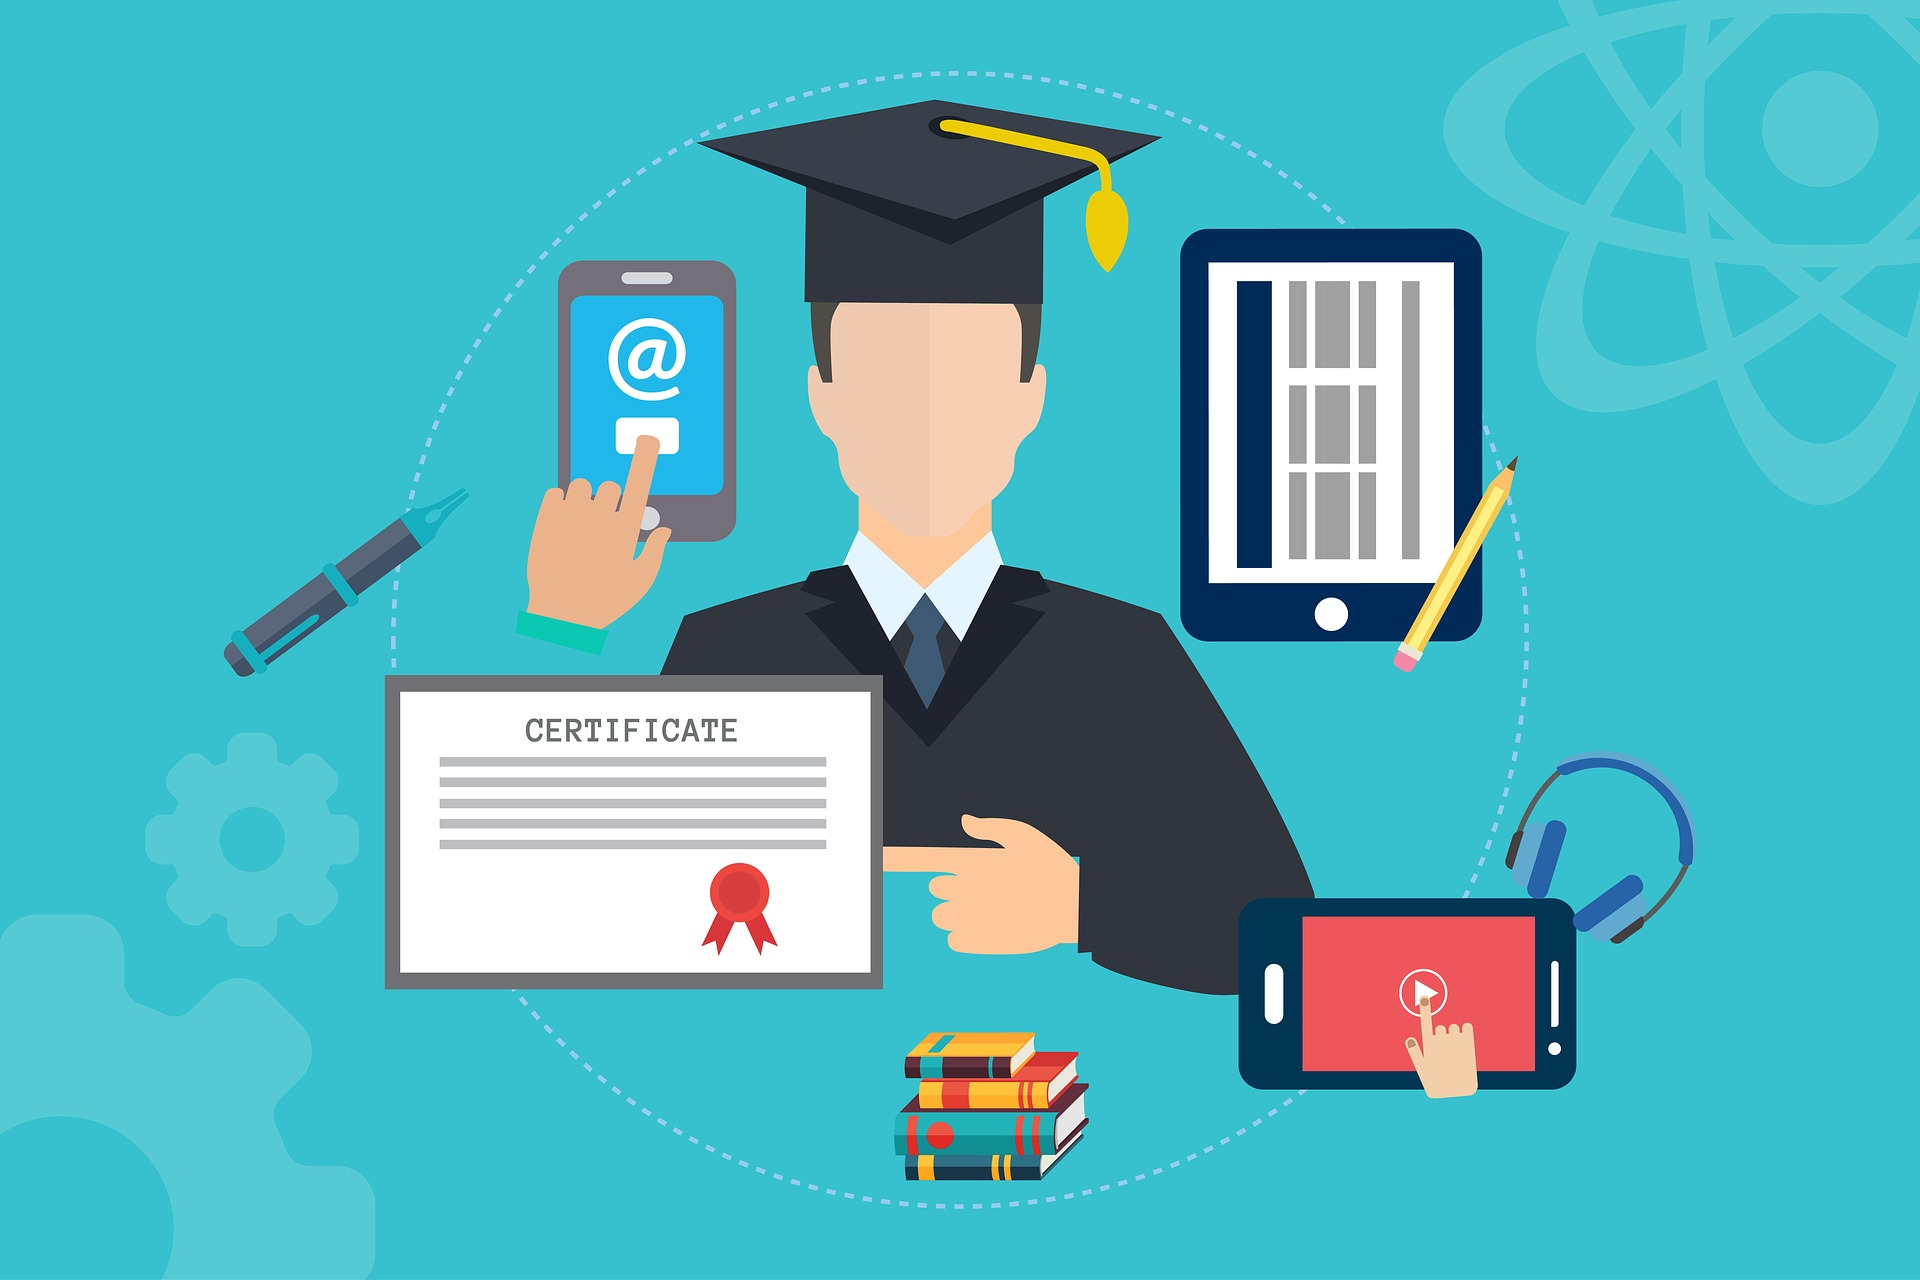 Online Courses To Enhance Your Skills,Online Courses To Boost Your Skills,Online Courses To Improve Your Skills, free online courses for students